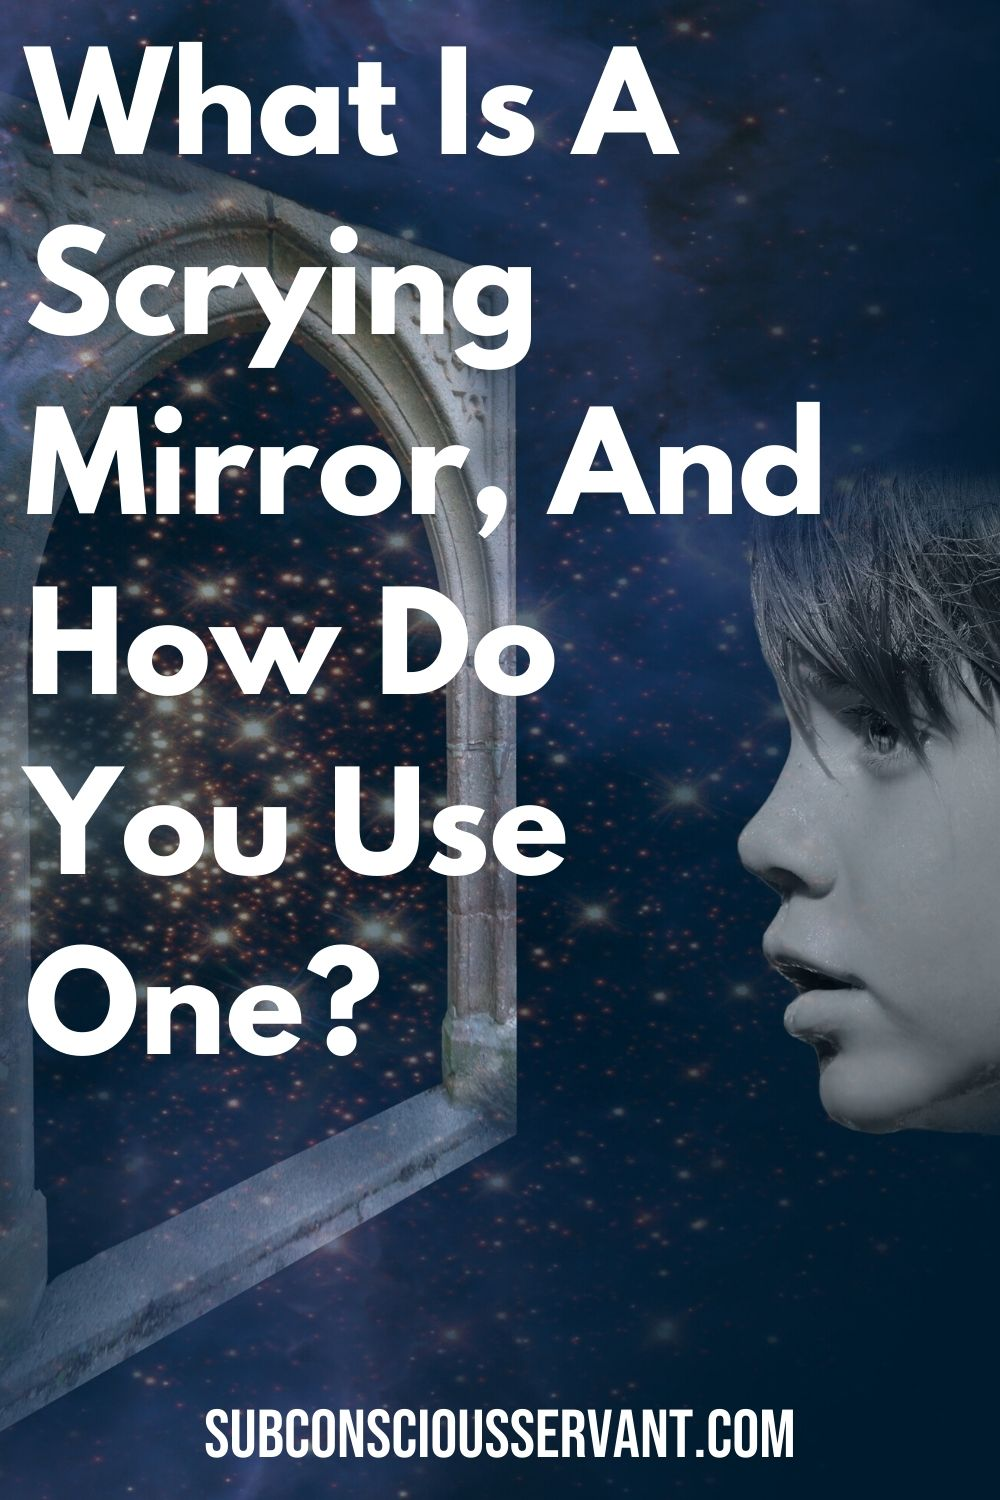 Scrying Mirror Guide- What Is It, And How Do You Use One?